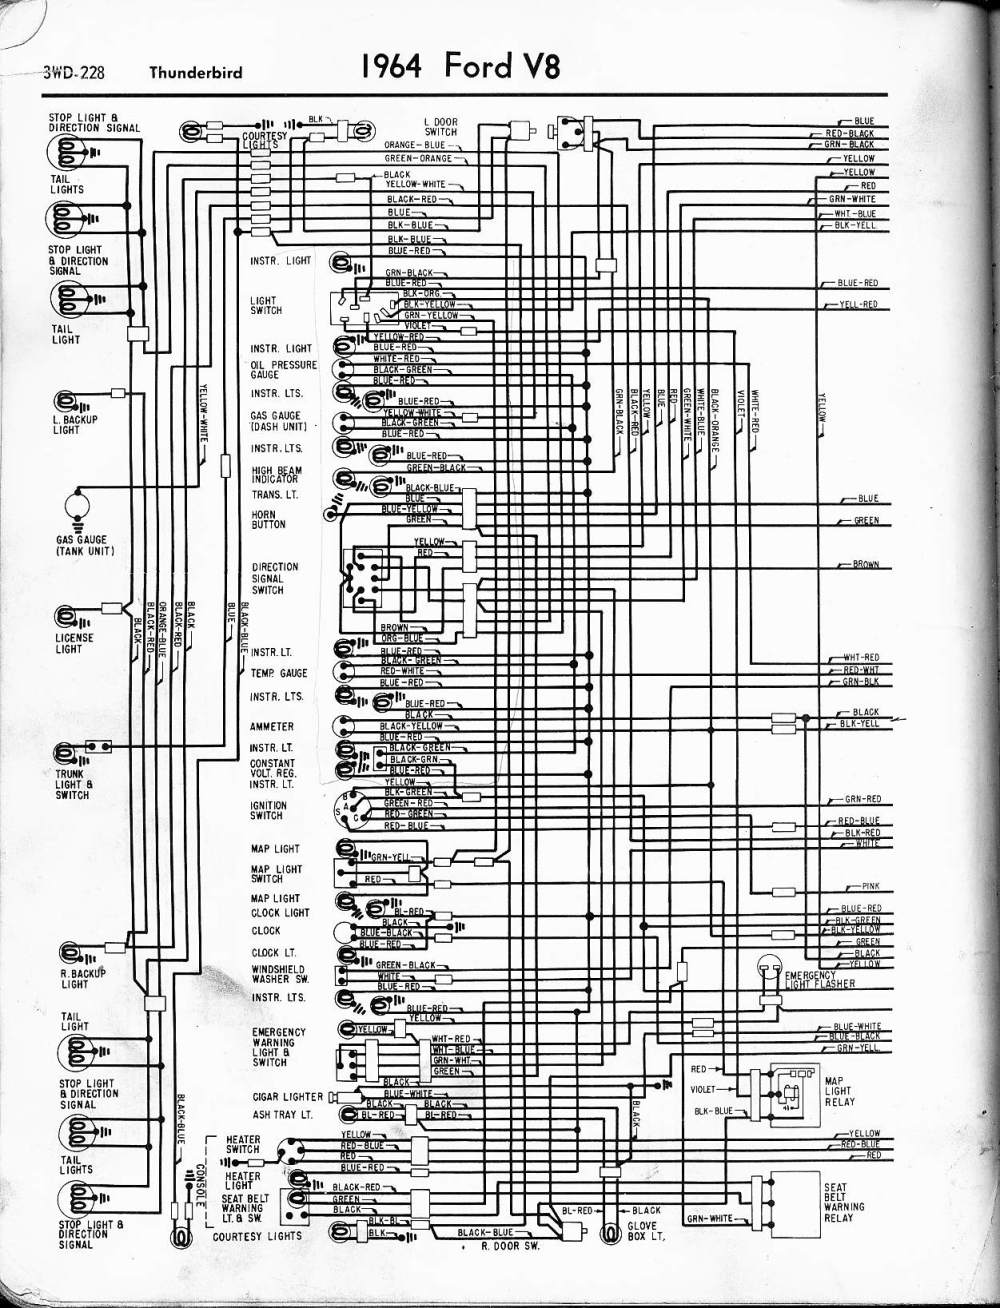 medium resolution of 1964 thunderbird wiring diagram wiring diagram structure 1964 thunderbird stereo wiring diagram